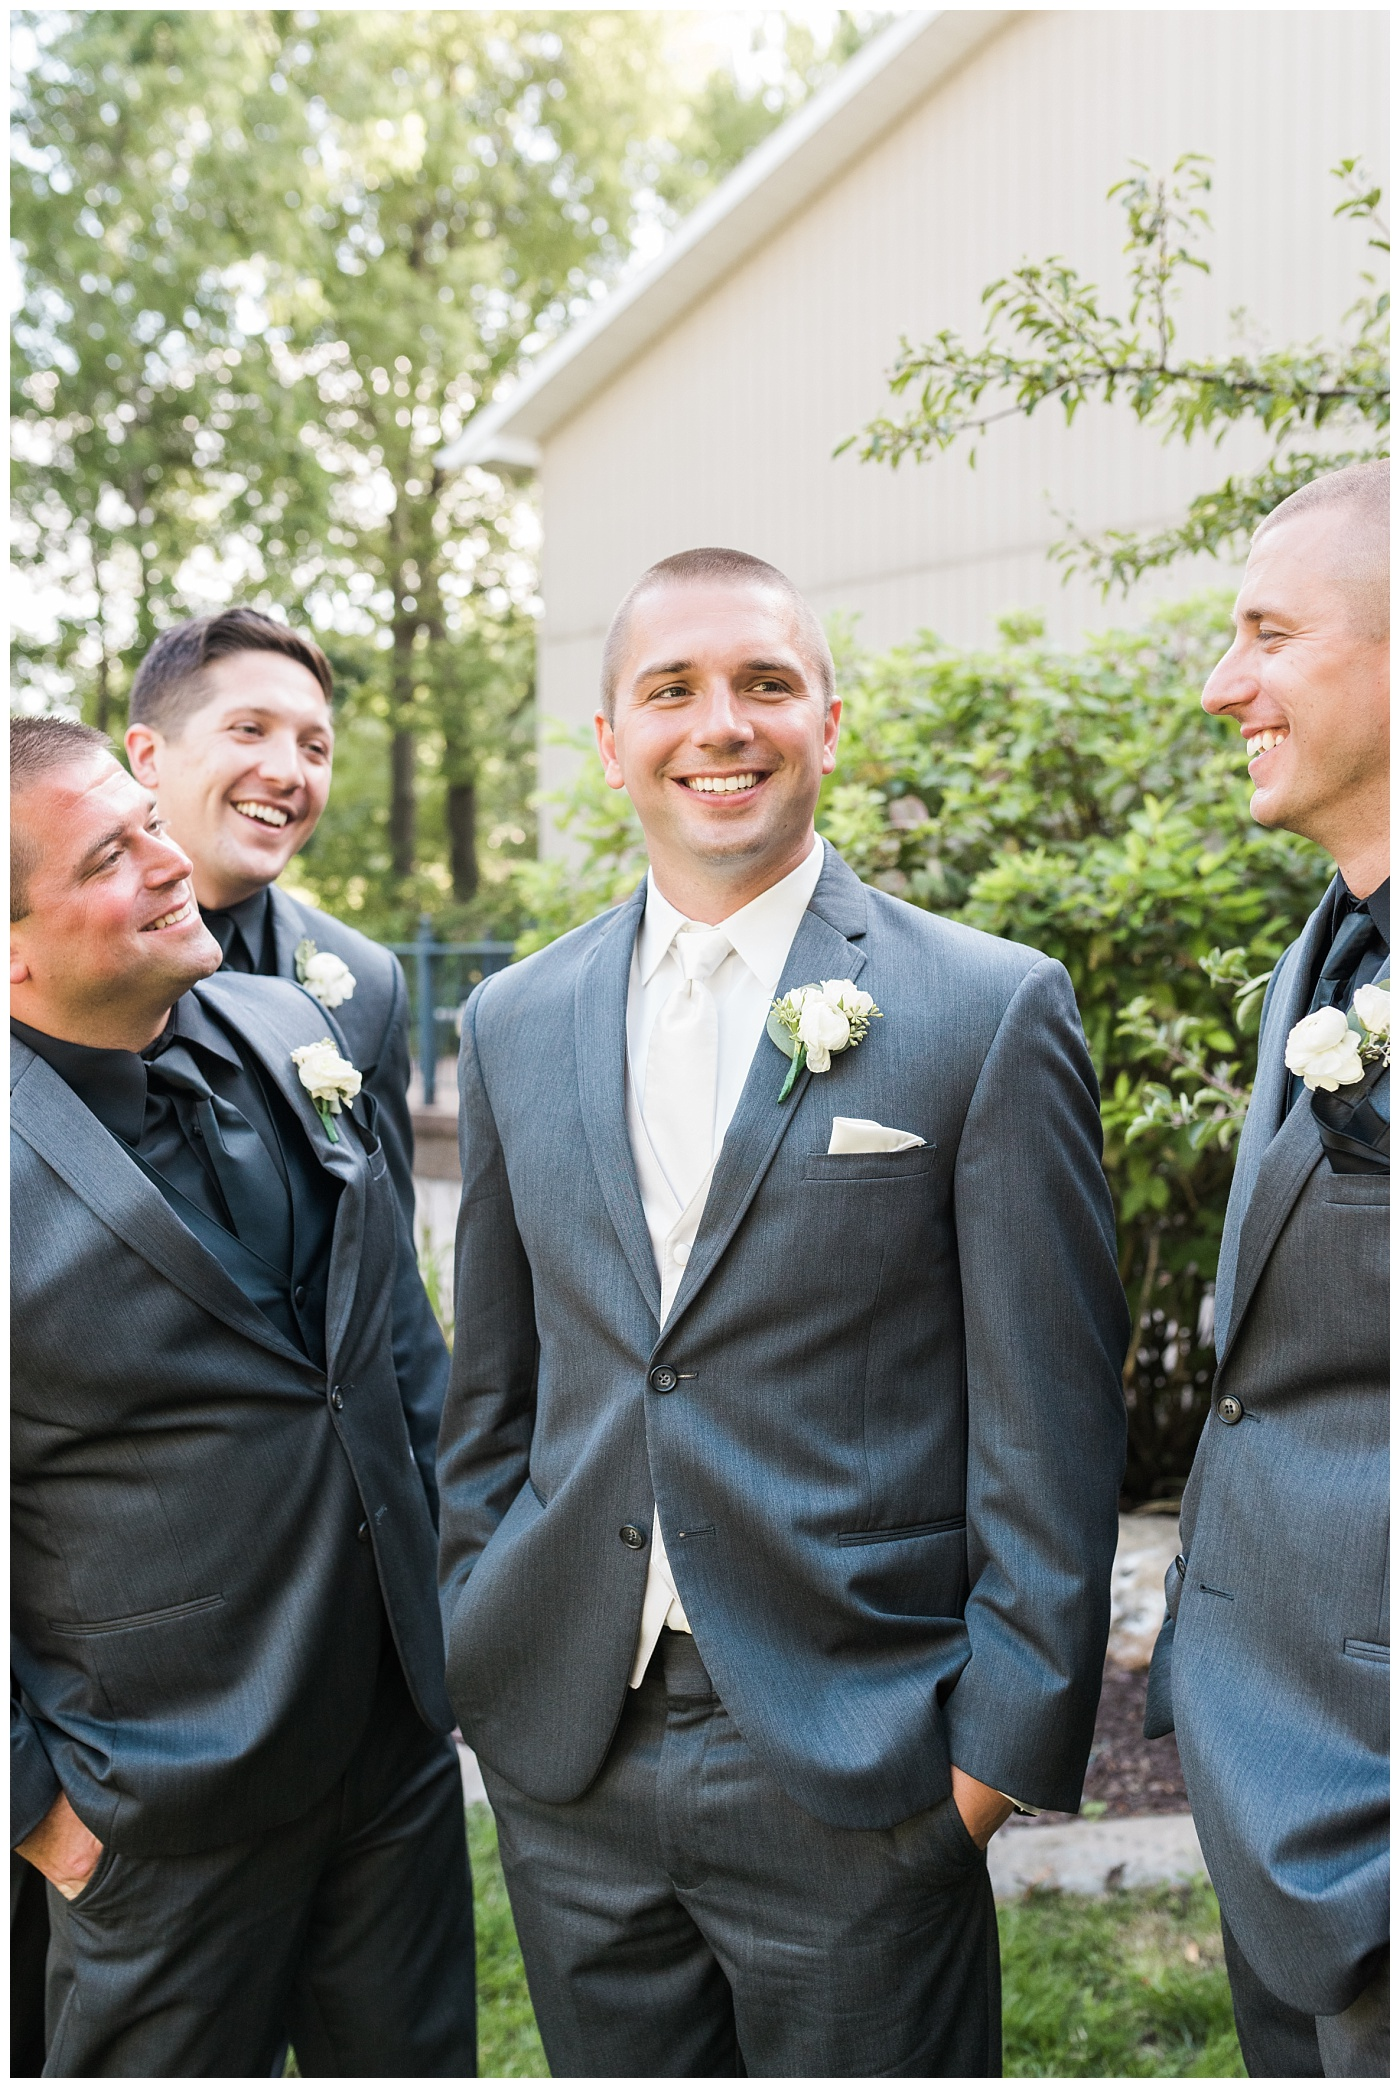 Stephanie Marie Photography Newman Catholic Center Ceremony Bella Sala Reception Tiffin Iowa City Wedding Photographer Chelsey Justin Meyers_0031-1.jpg